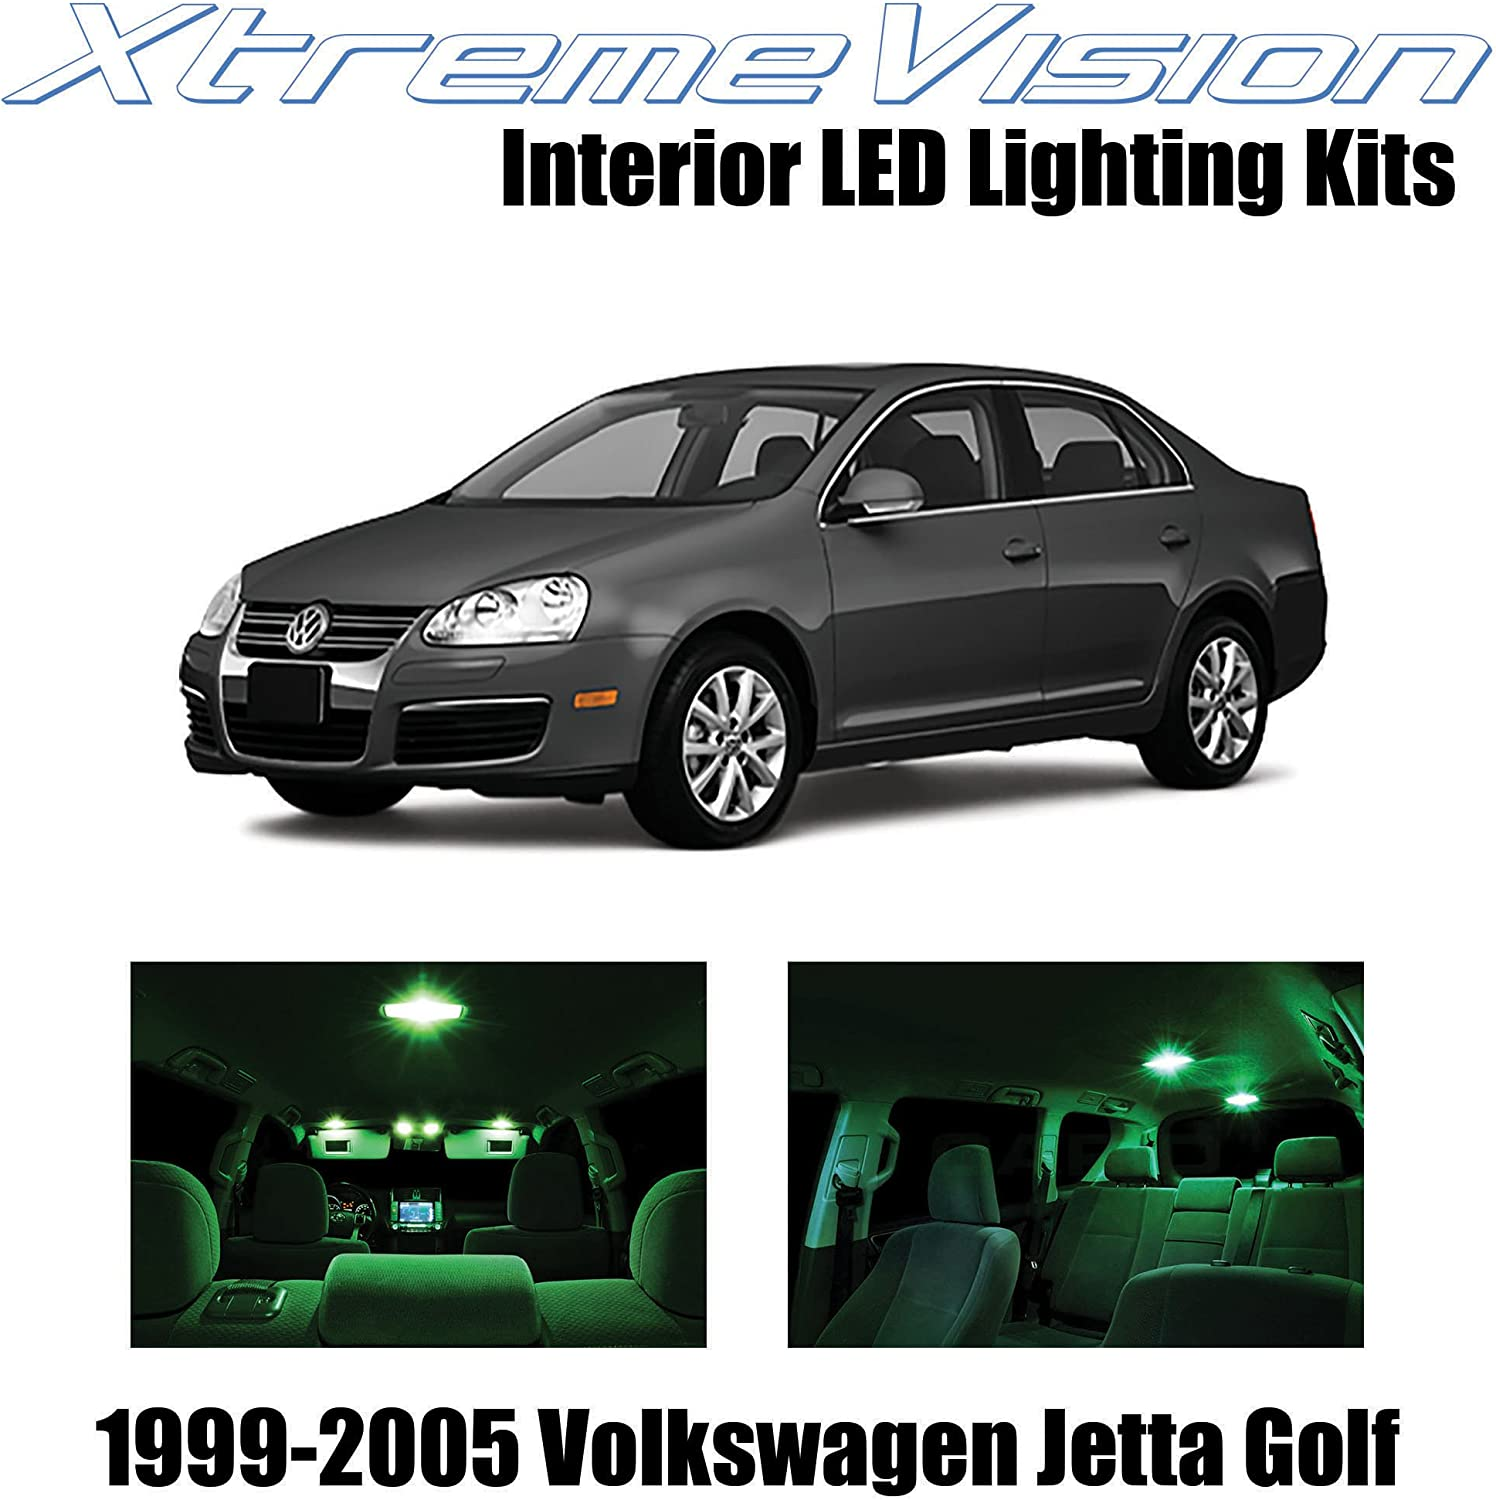 amazon com xtremevision interior led for volkswagen jetta golf 1999 2005 12 pieces green interior led kit installation tool automotive amazon com